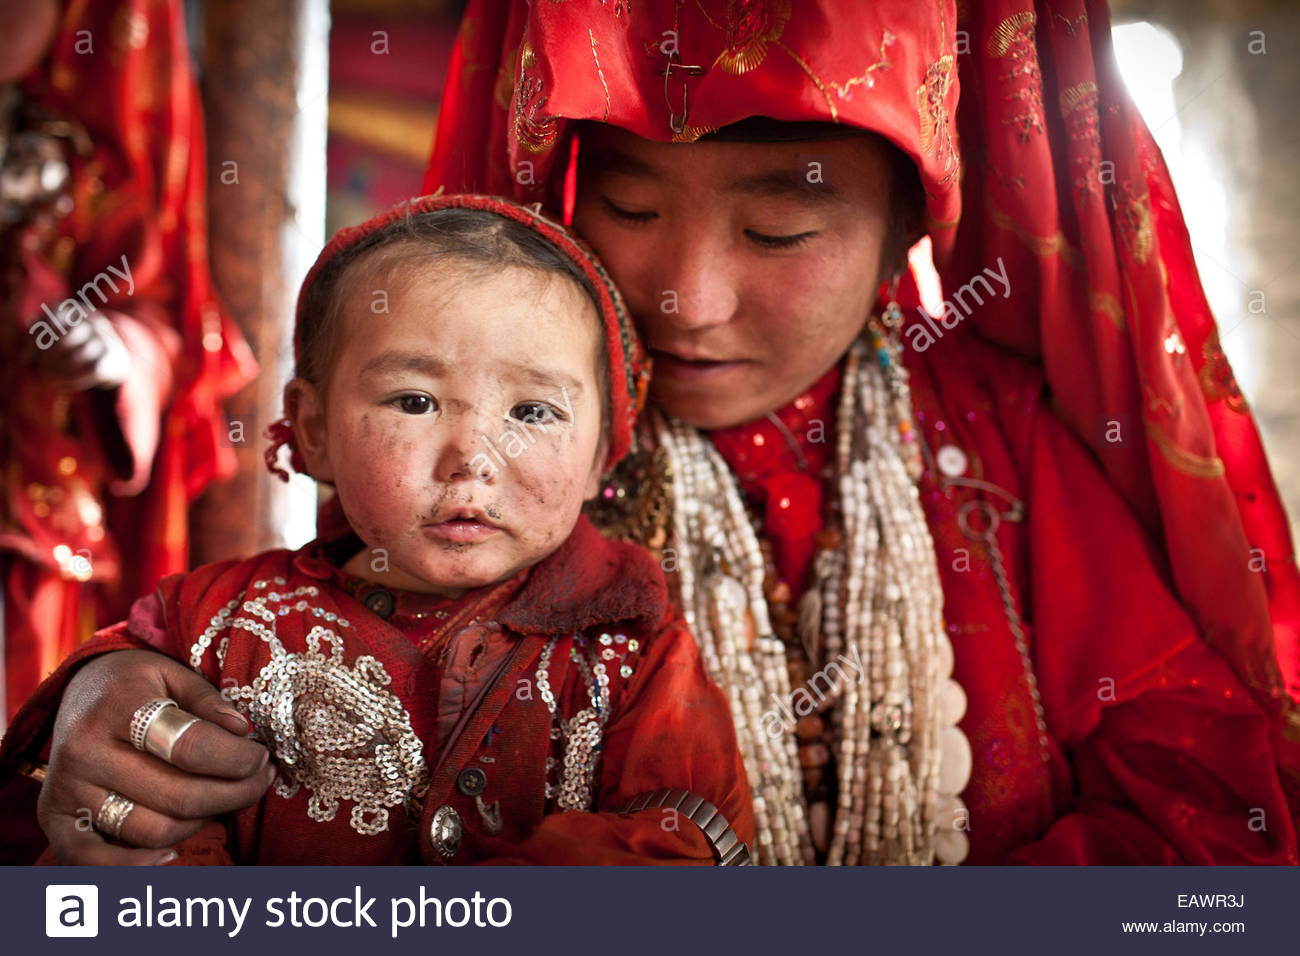 A recently married girl with her younger sister. - Stock Image